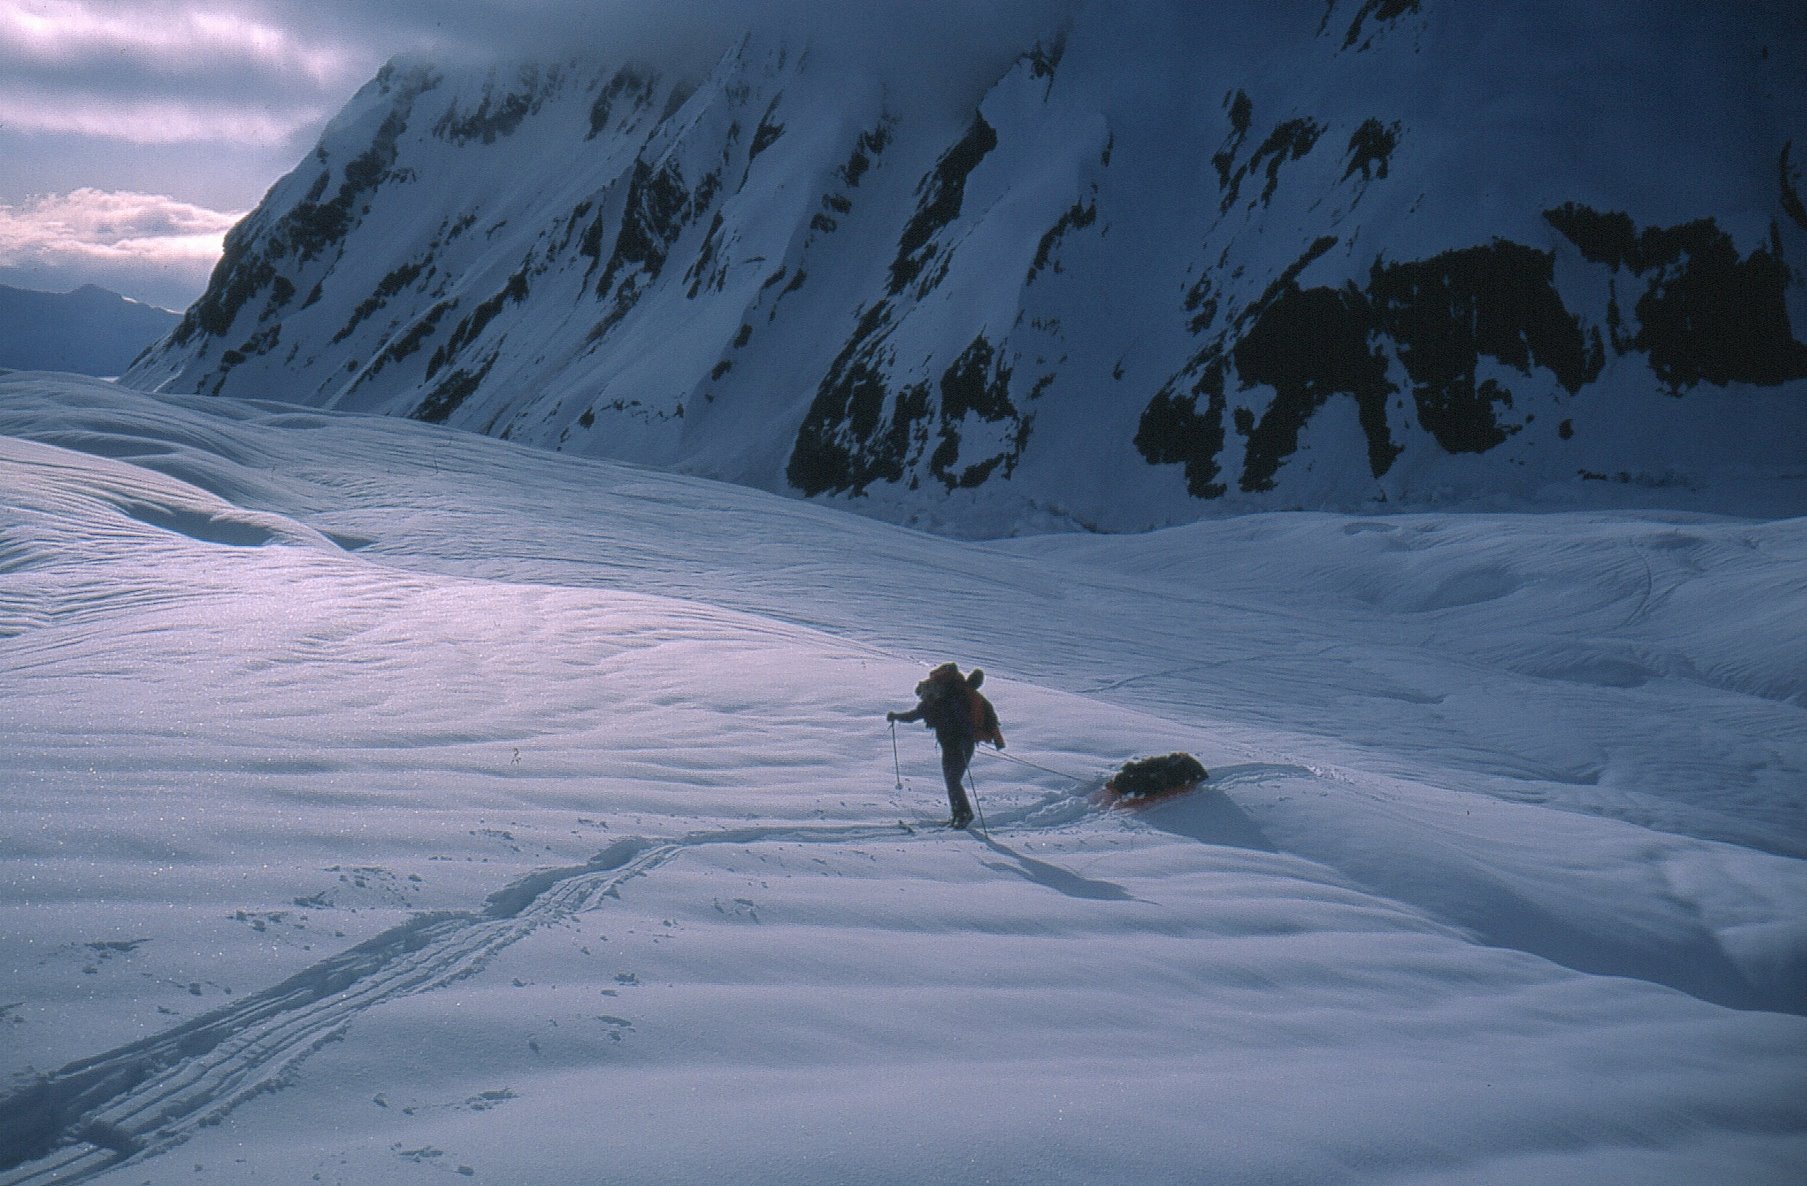 Skiing on the Grand Plateau Glacier, Mt Fairweather.